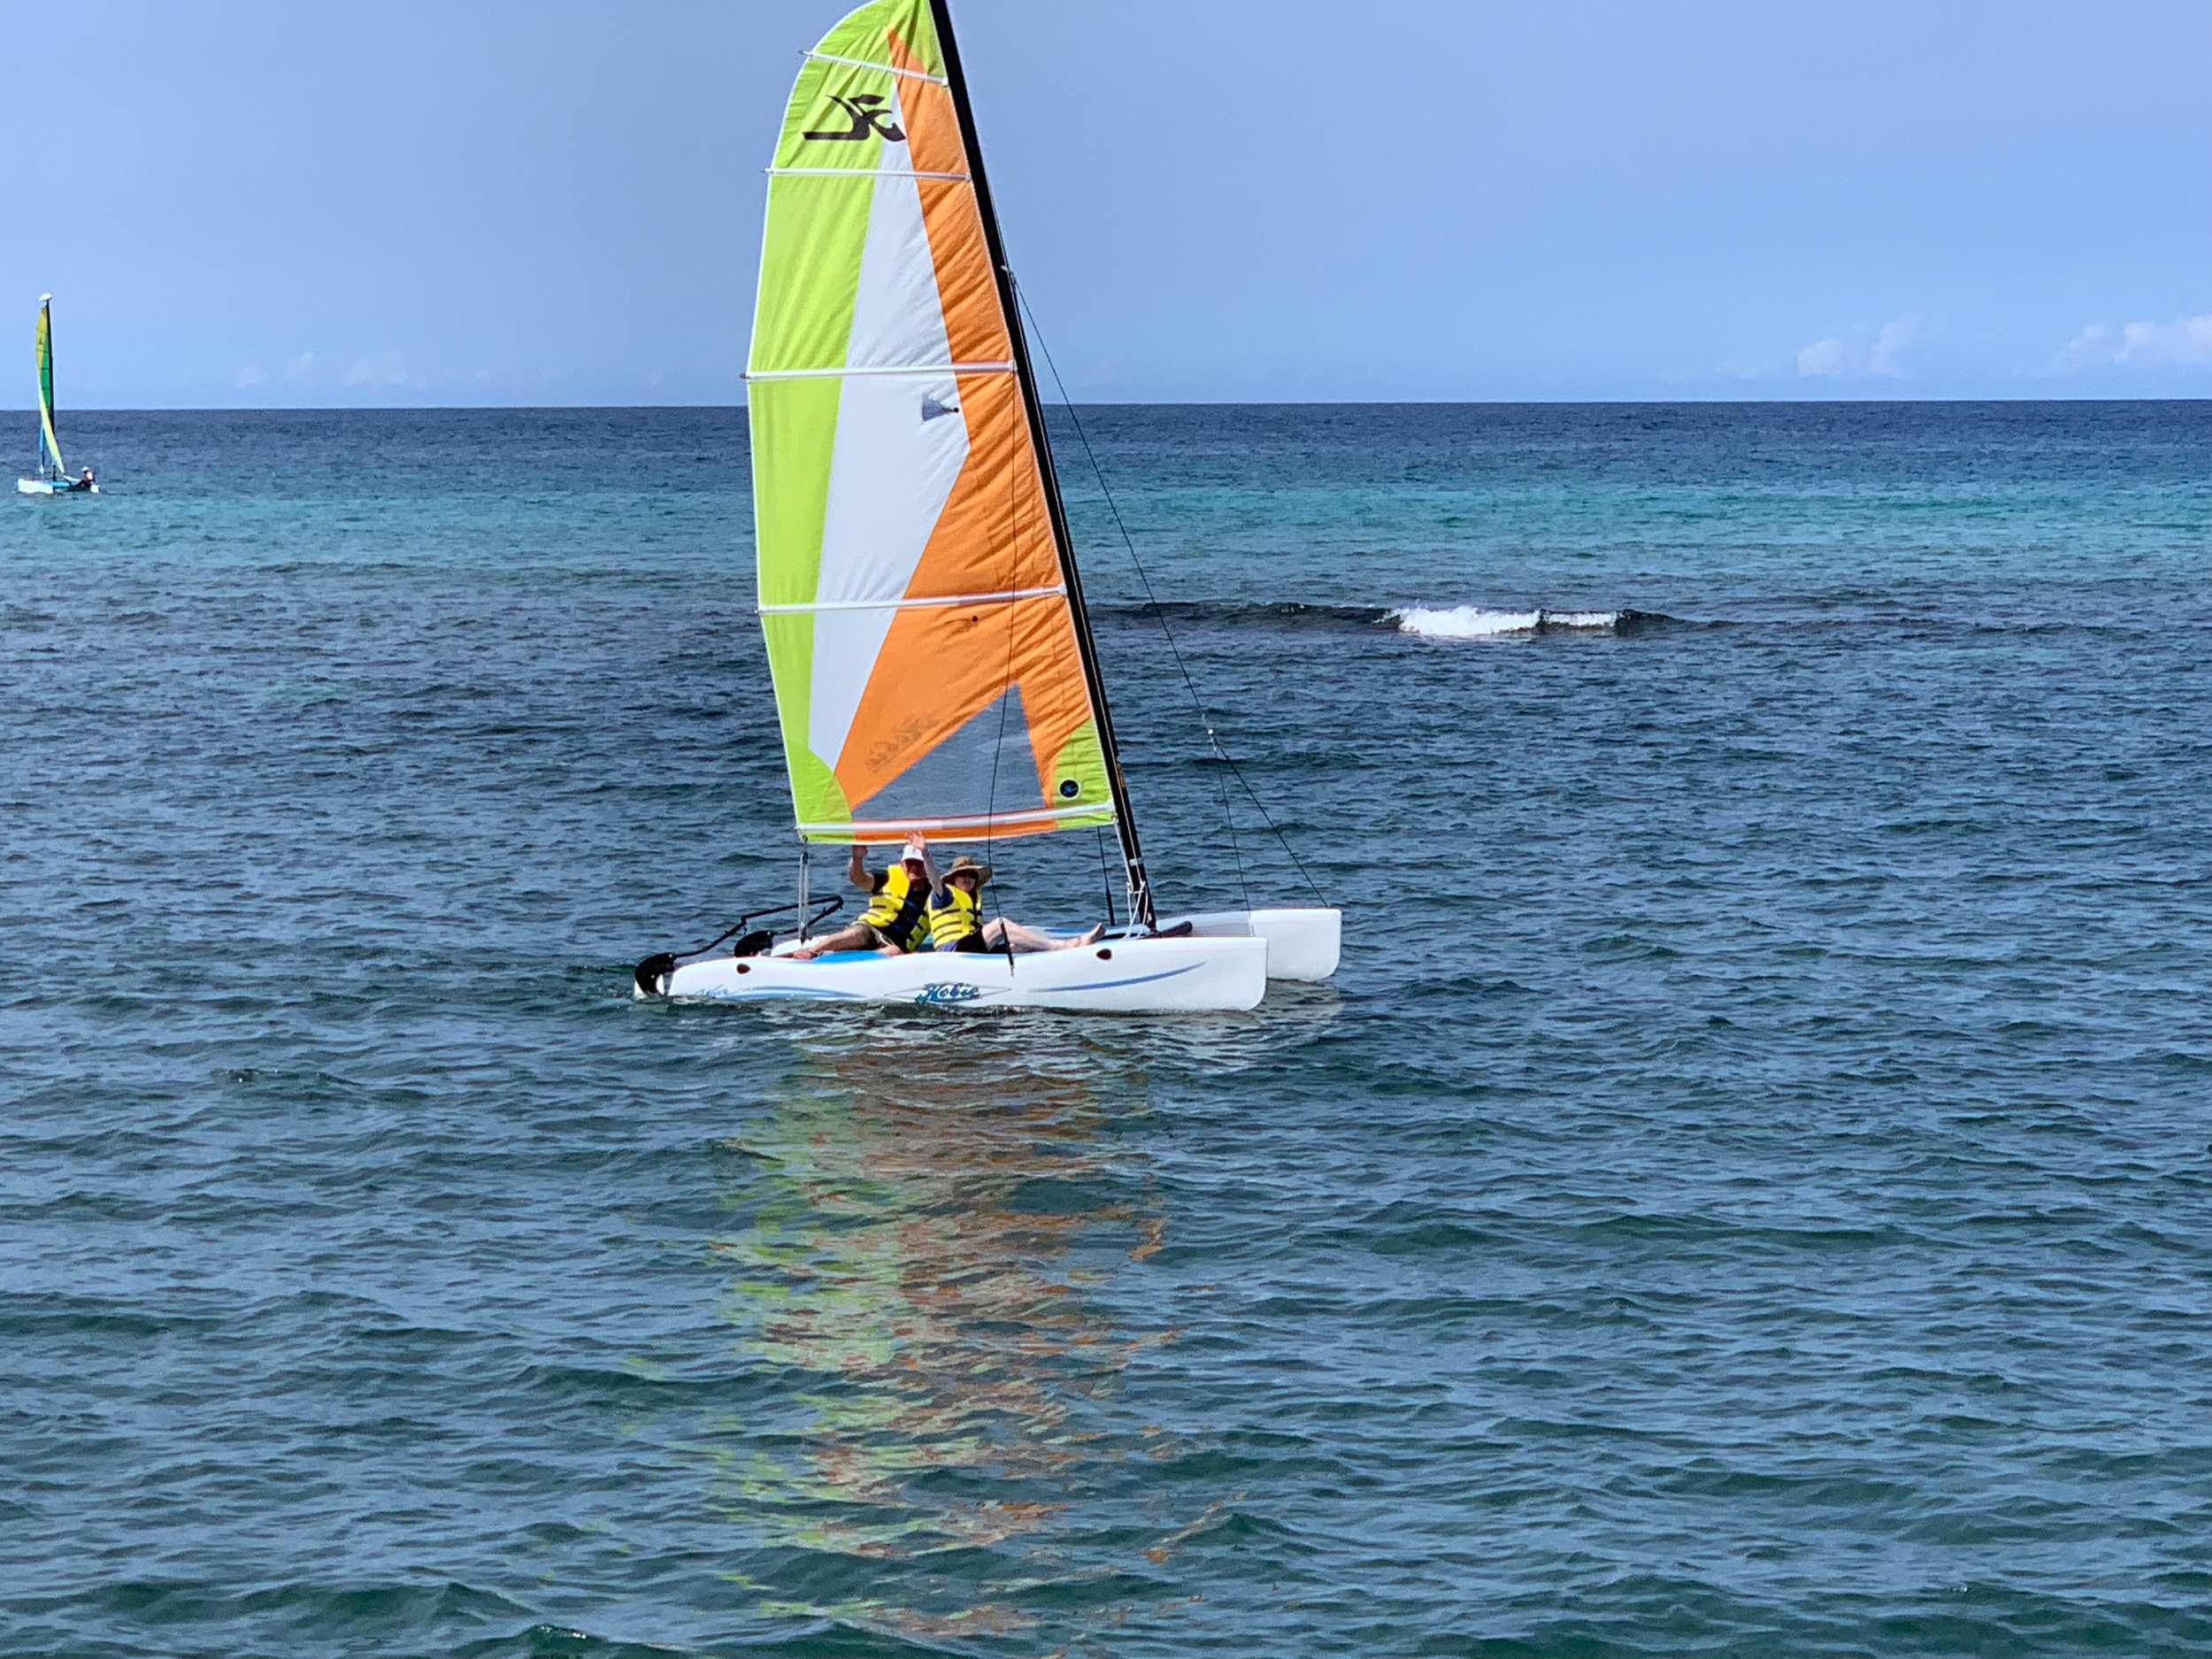 An avid sailor, Ron took Vee to Jamaica for her first sailing adventure two weeks before their wedding.